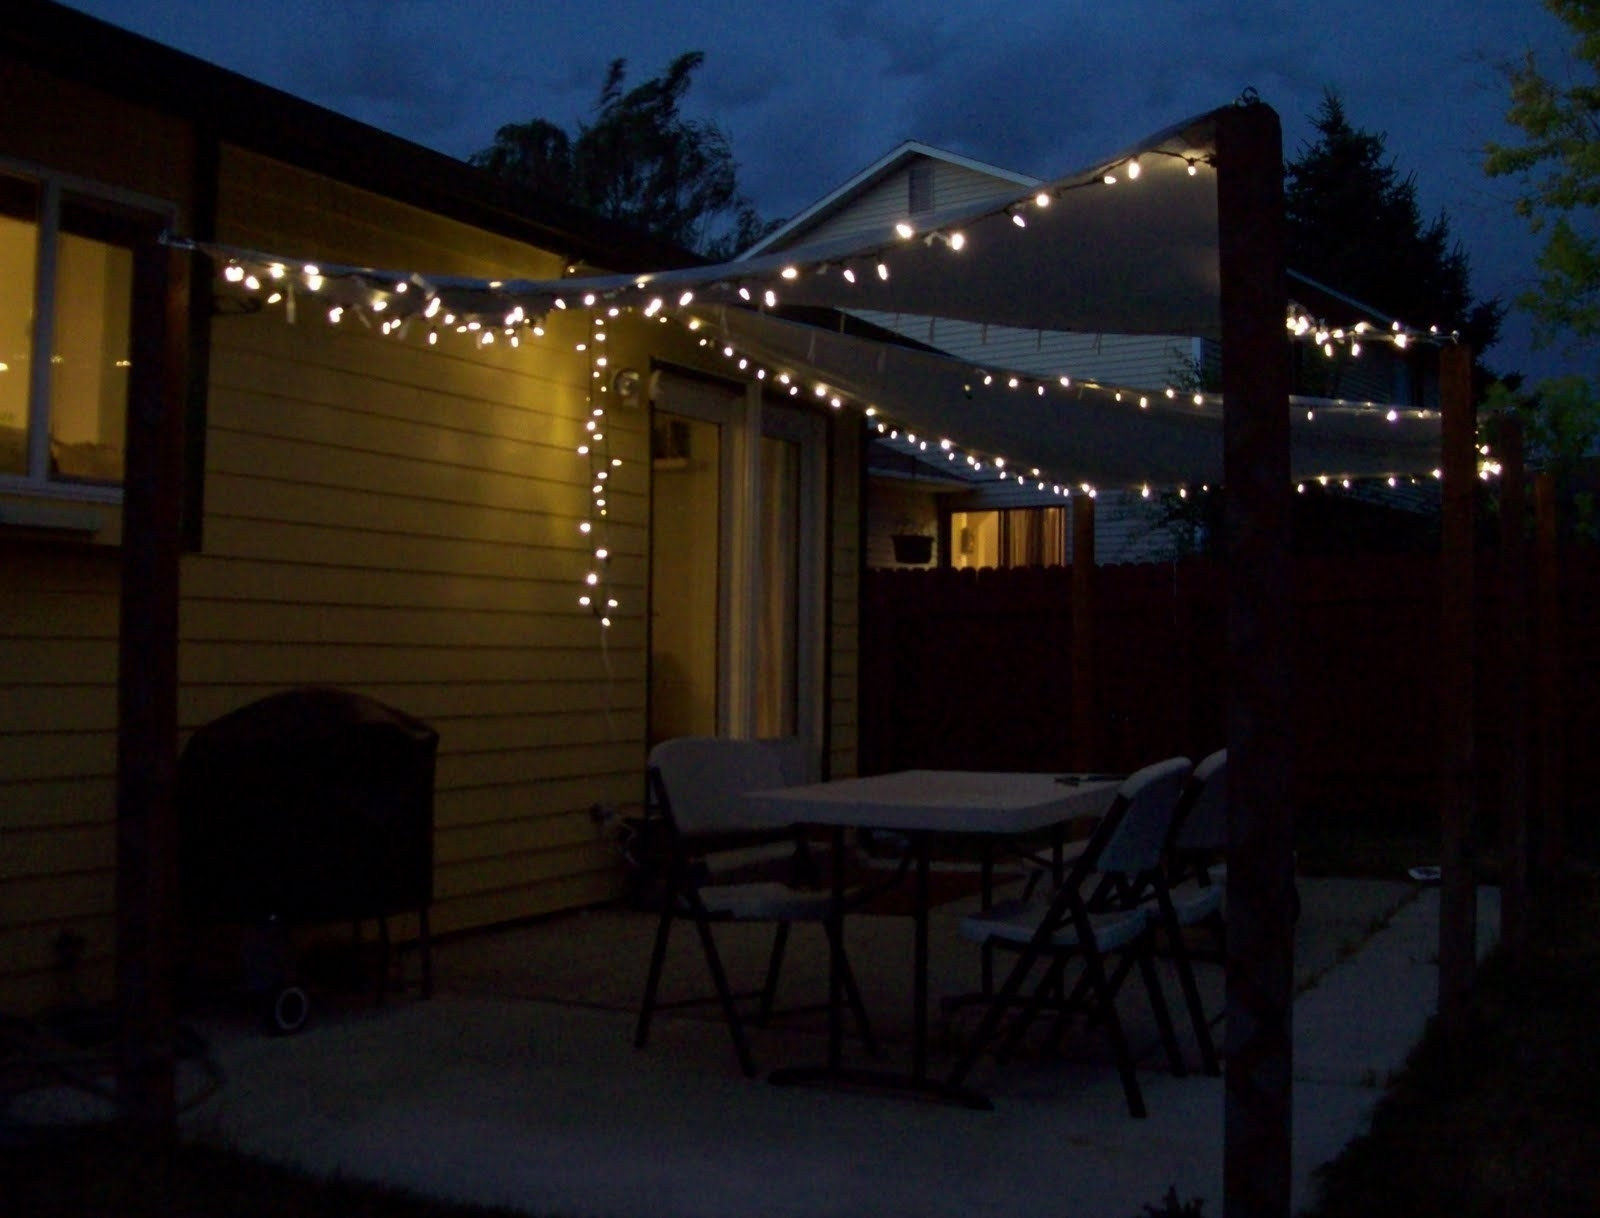 Lovable Patio Hanging Lights Patio Backyard String Lighting Inside Trendy Outdoor String And Patio Lights (View 18 of 20)